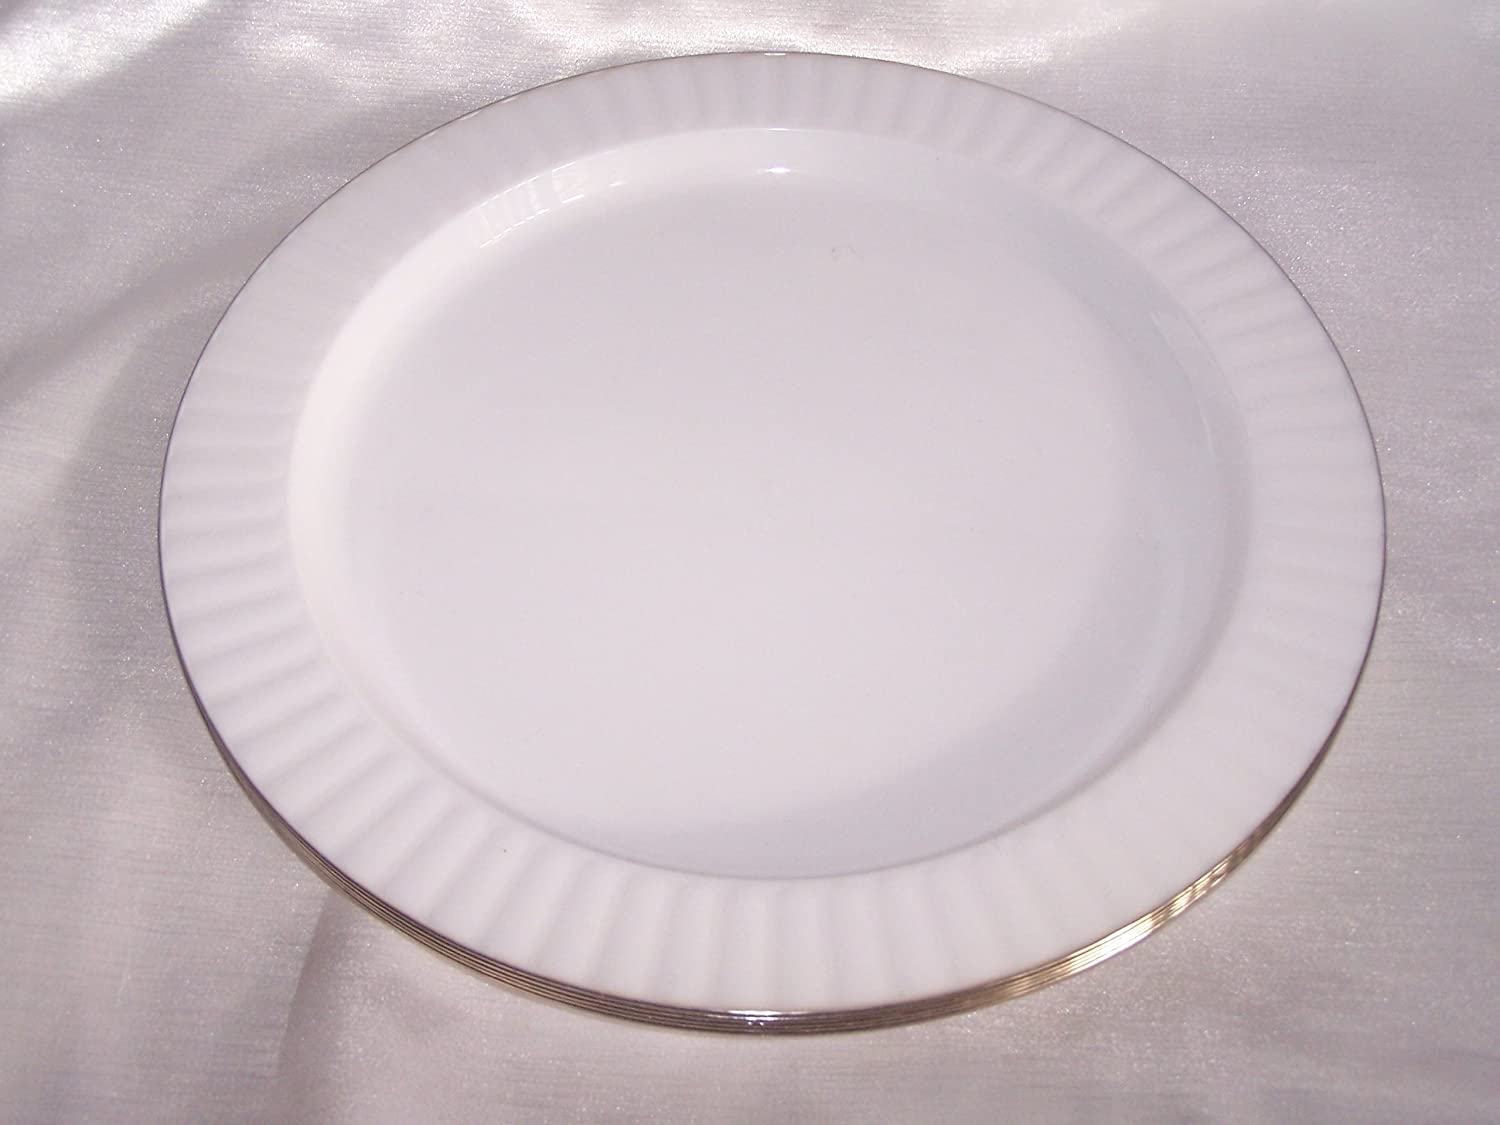 20 Luxurious Strong White Plastic Plates with Silver Rim 7\  Disposable - Party Weddings Catering Amazon.co.uk Kitchen \u0026 Home & 20 Luxurious Strong White Plastic Plates with Silver Rim 7 ...